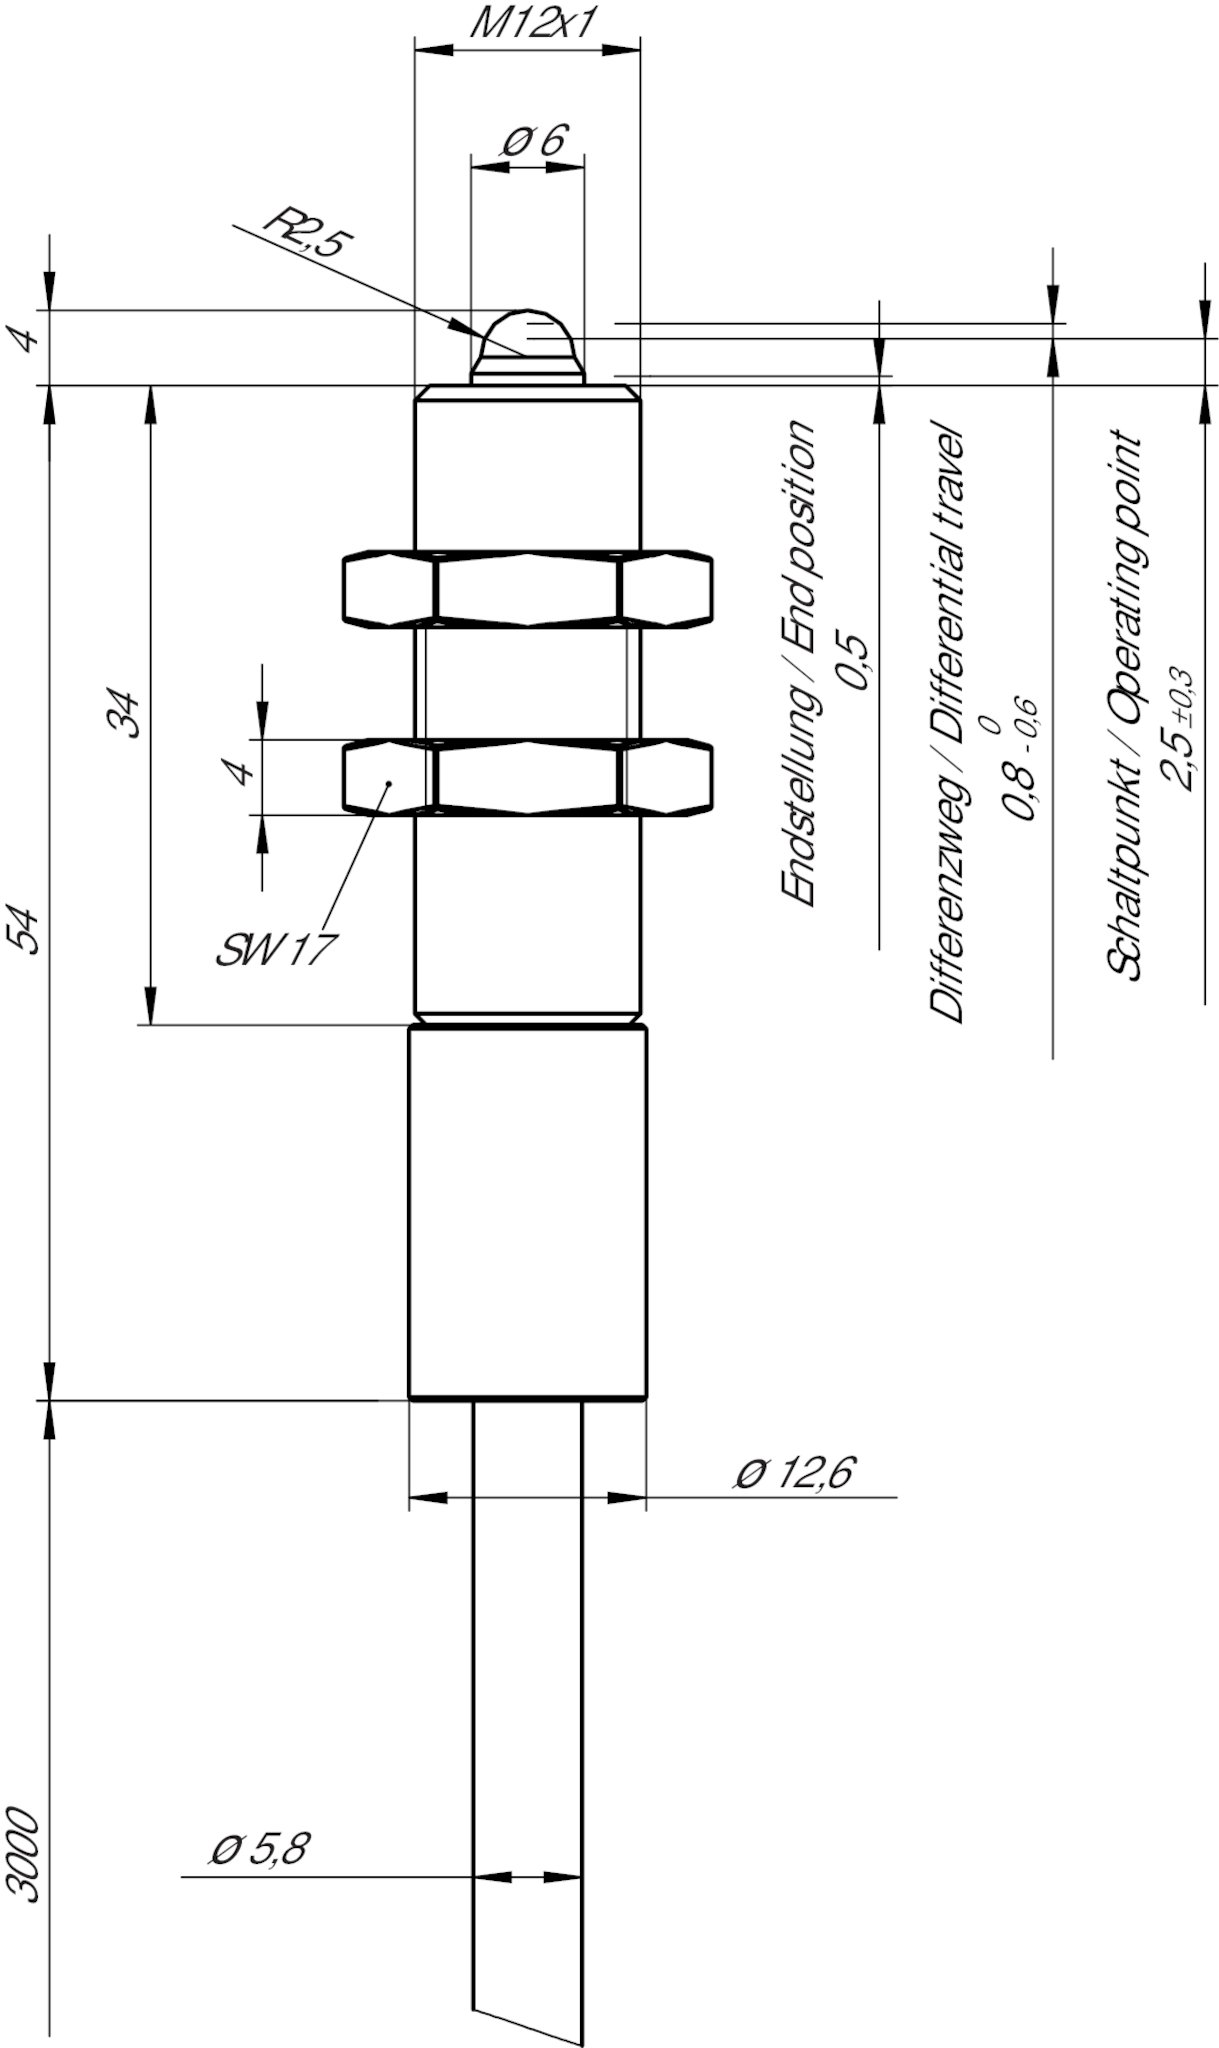 Egt12a3000c2250 Precision Single Hole Fixing Limit Switch